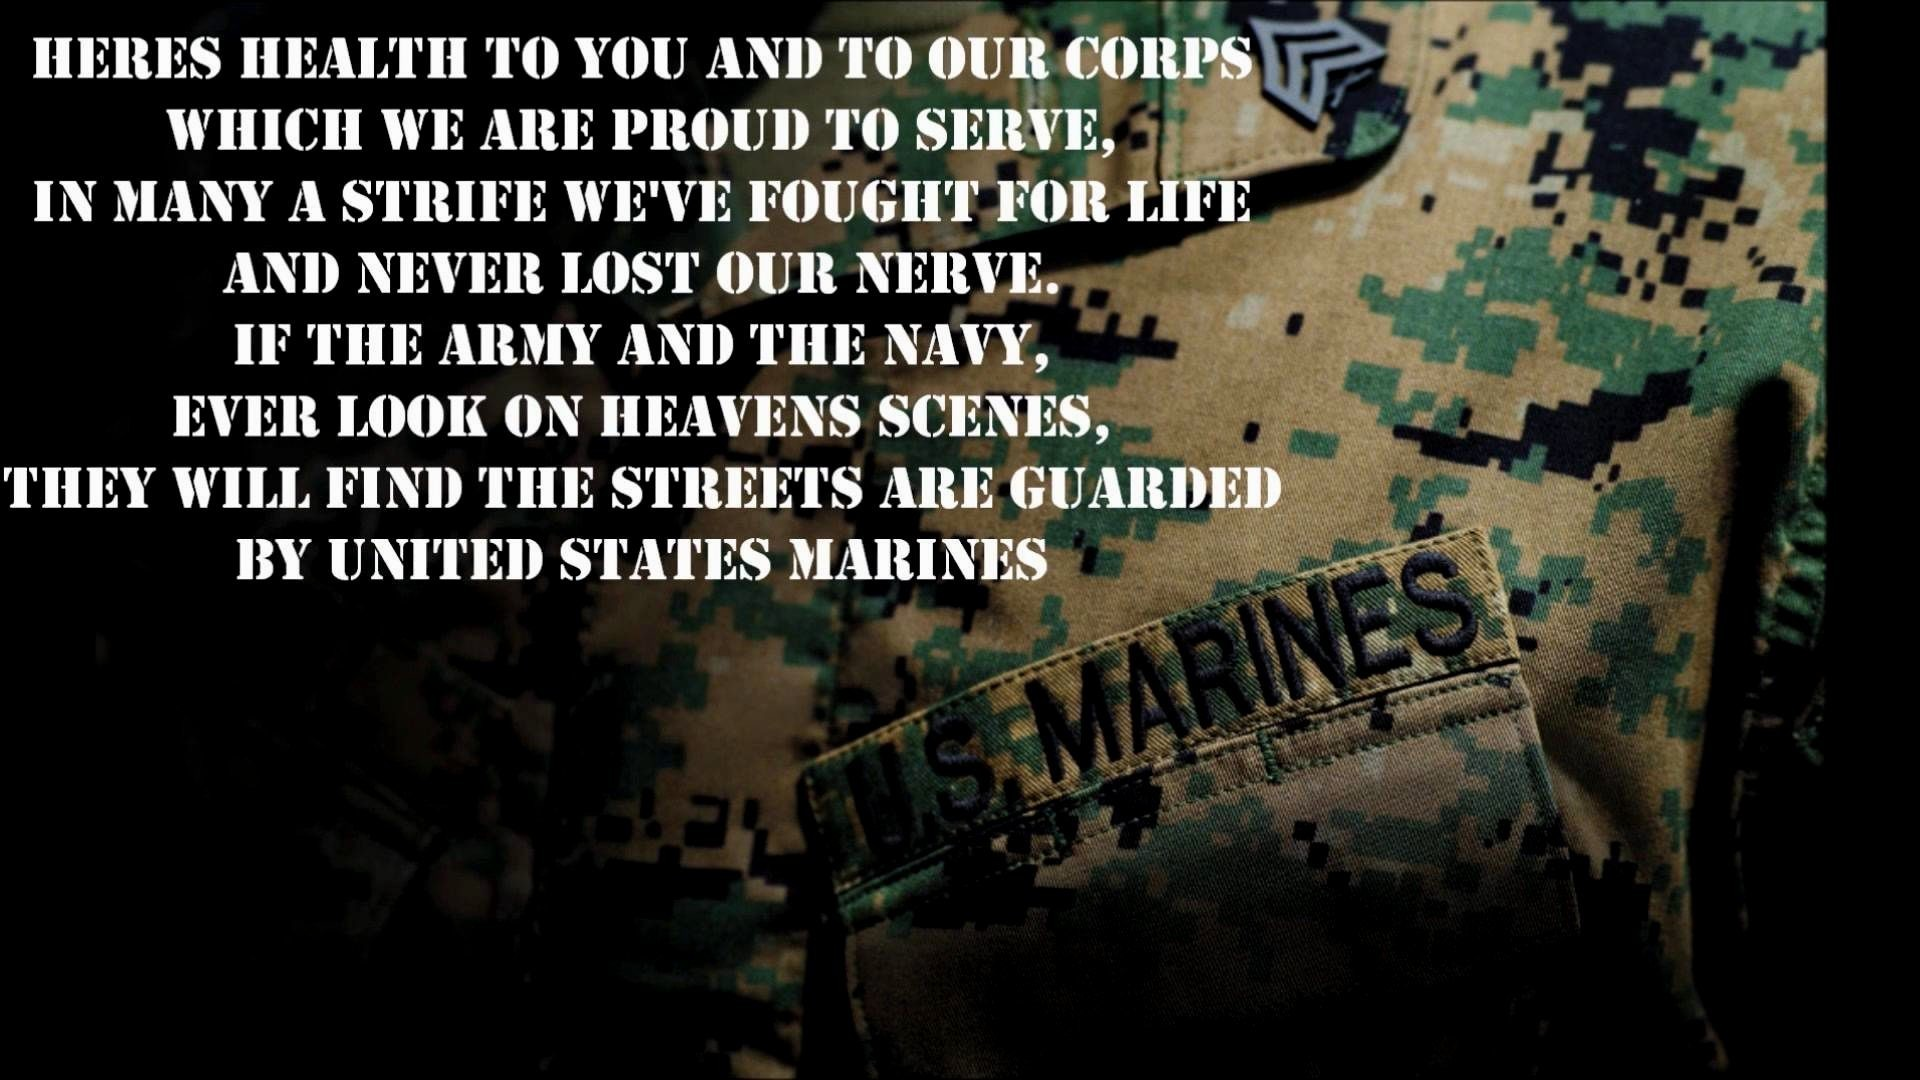 Famous Marine Corps Quotes Marine Corp Wallpaper ·①